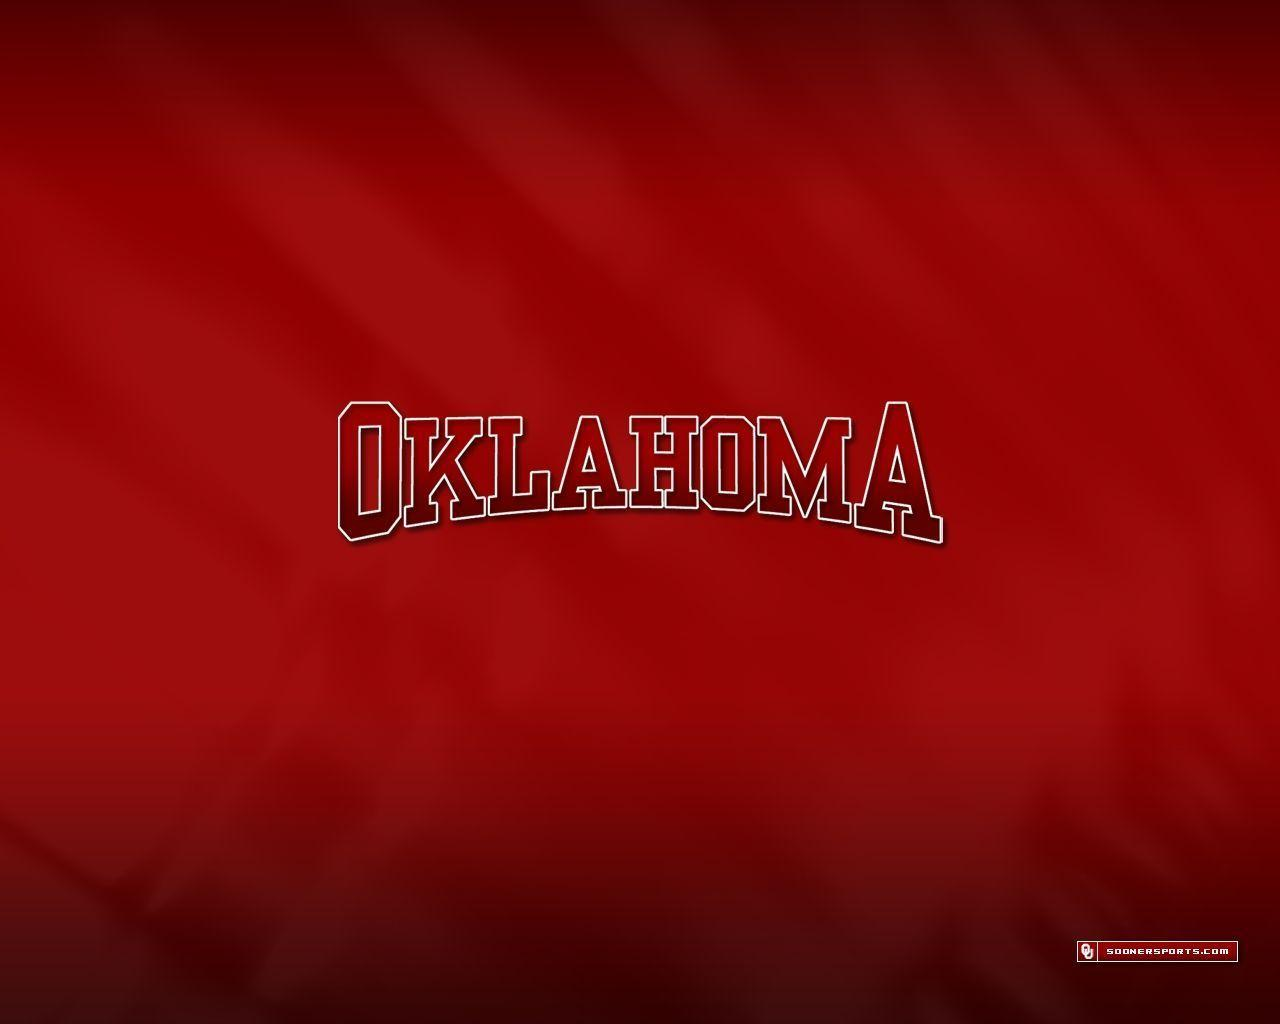 Oklahoma Sooners Wallpaper 25106 Wallpapers HD | colourinwallpaper.